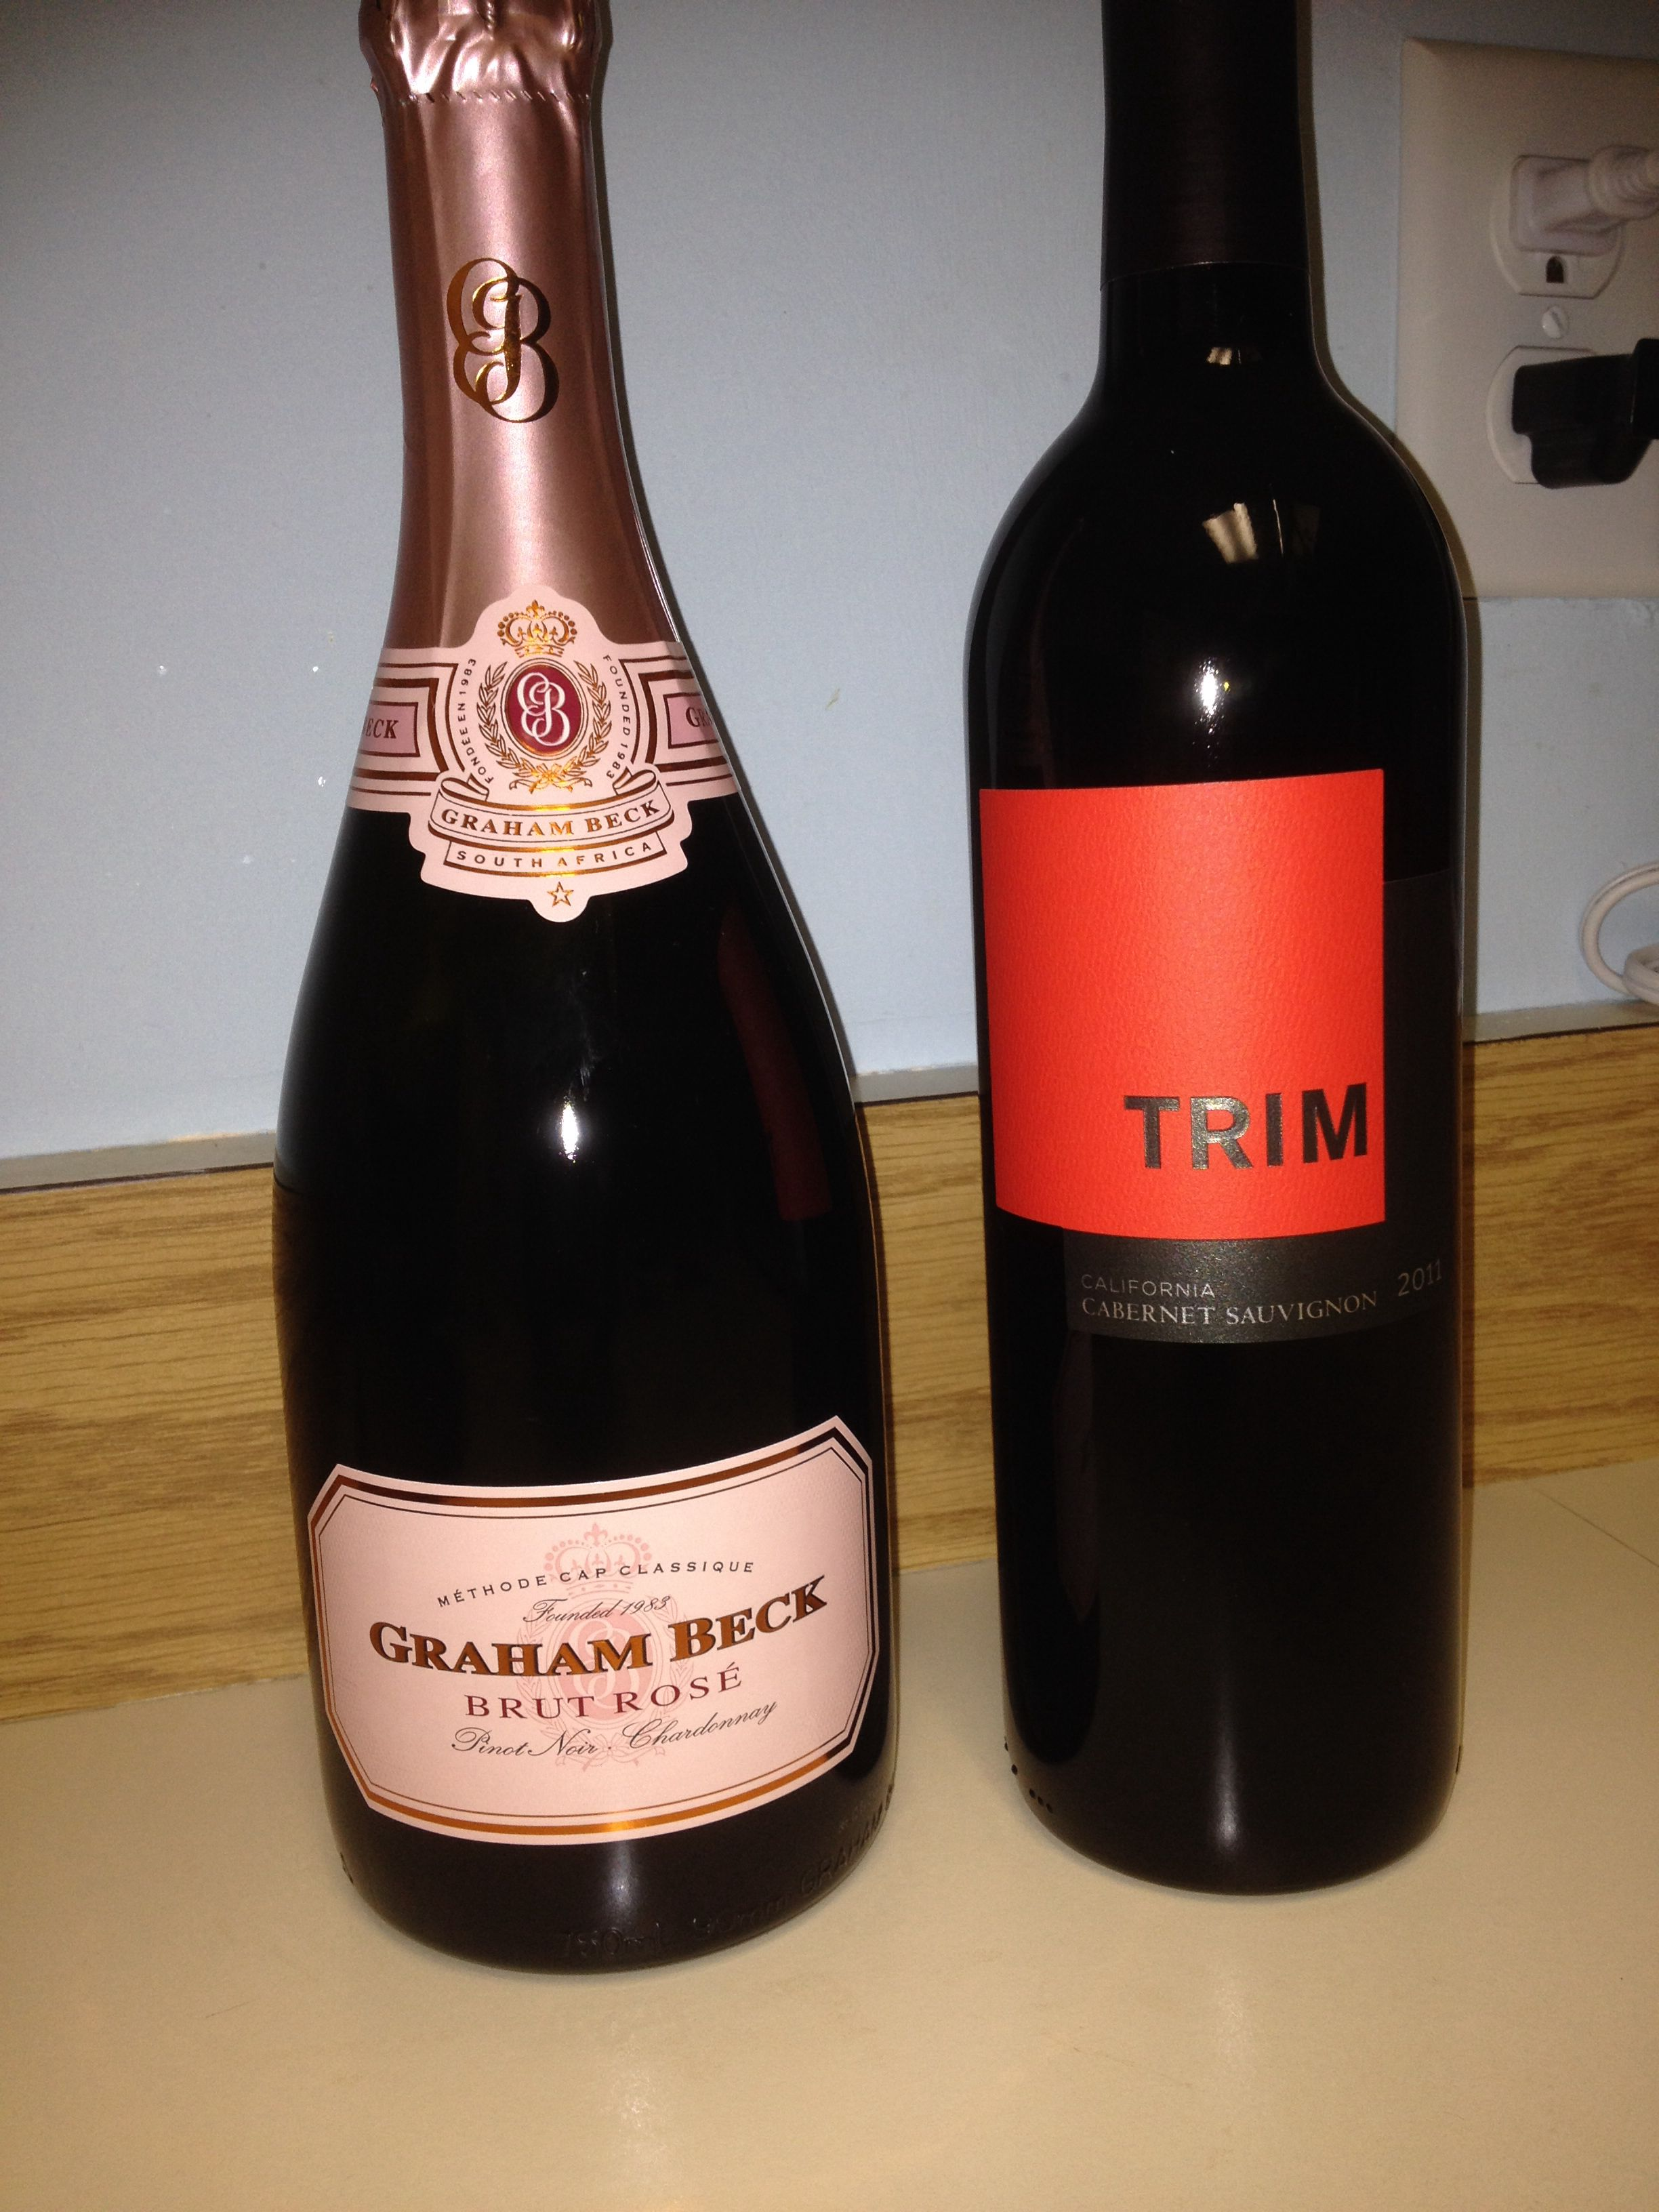 Peter S Wine Shop January Wine Of The Month Wine Bottle Wine Champagne Bottle